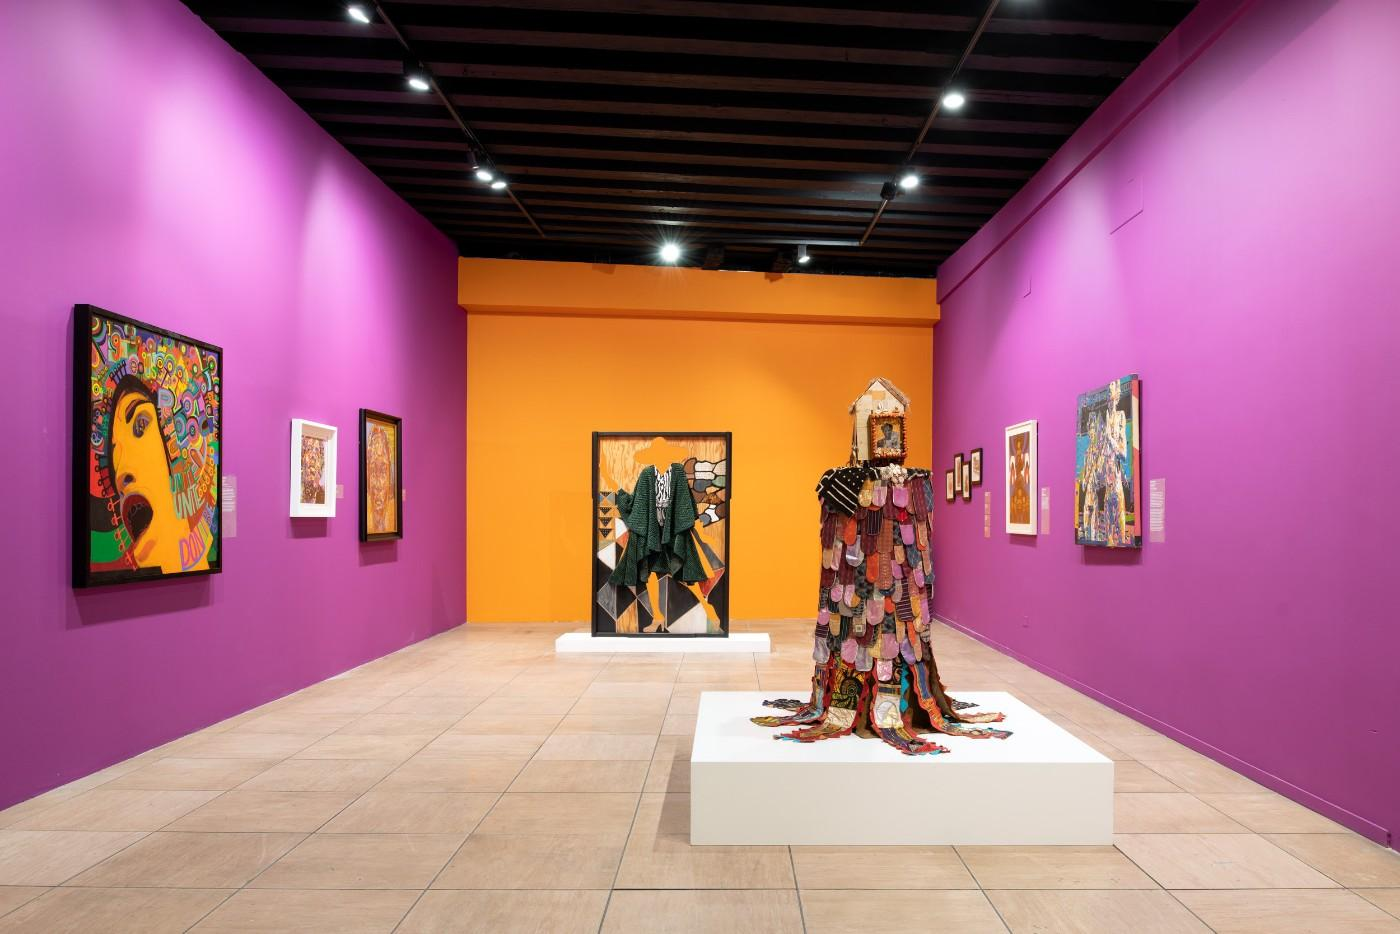 AFRICOBRA: Nation Time (installation view), 2019, Venice Biennale, Venice, Italy